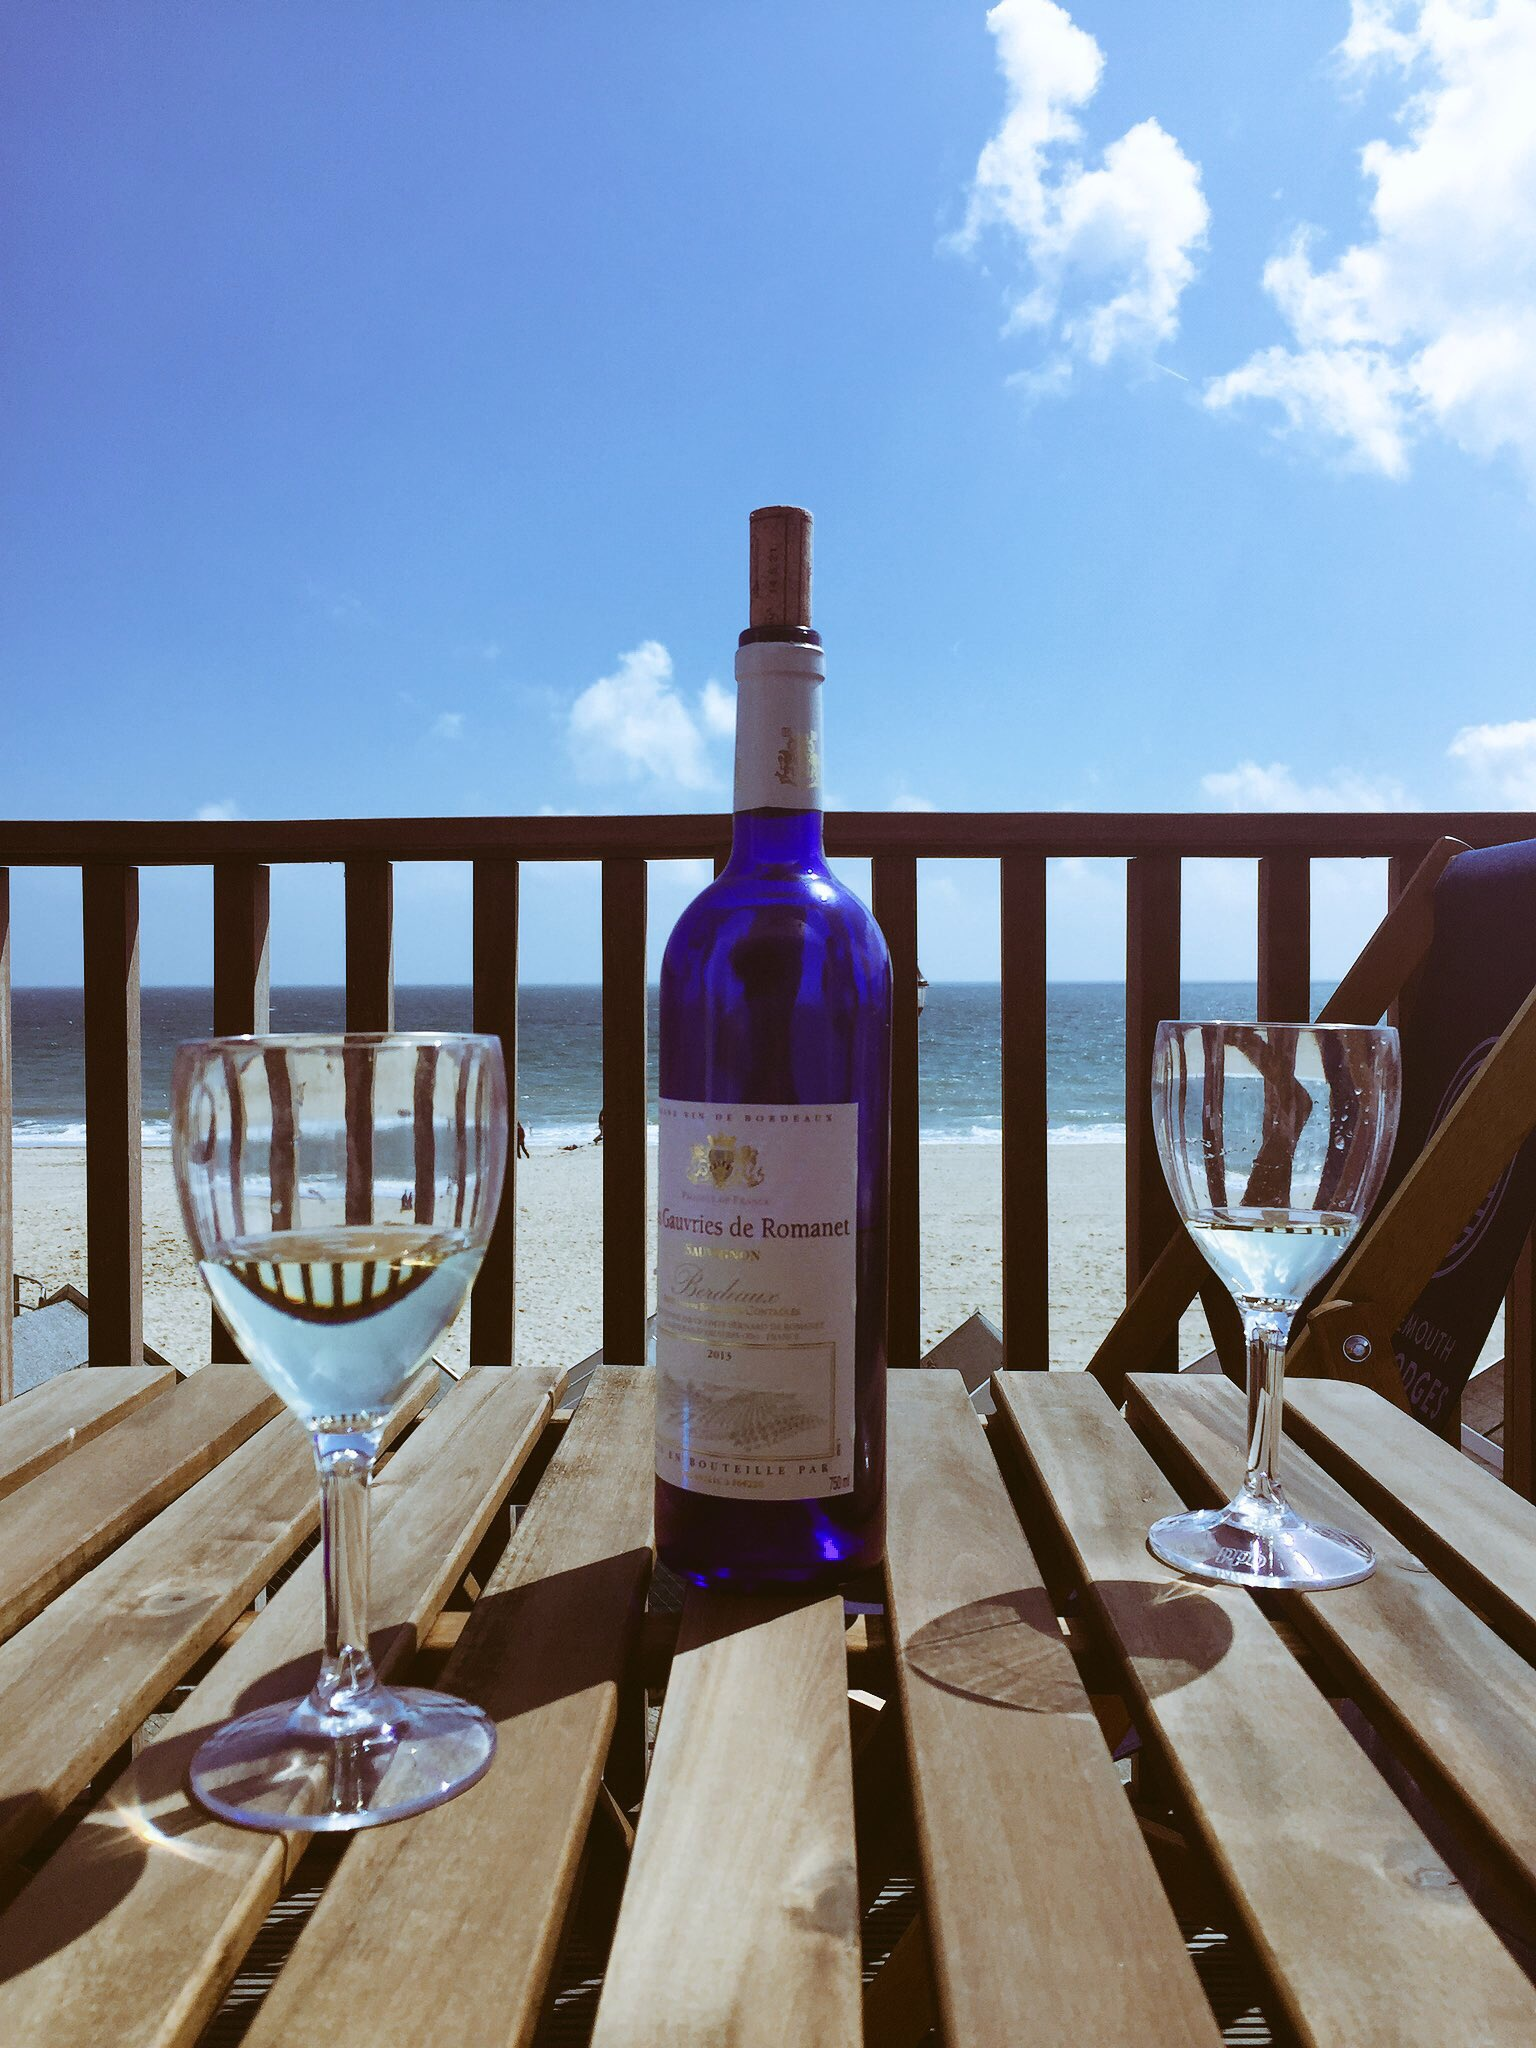 Little pre-dinner tipple on the terrace @bmthbeachlodges #Bournemouth #staycation #vindebordeaux #bordeaux #dorset #swisbest https://t.co/BnfgicpWdP